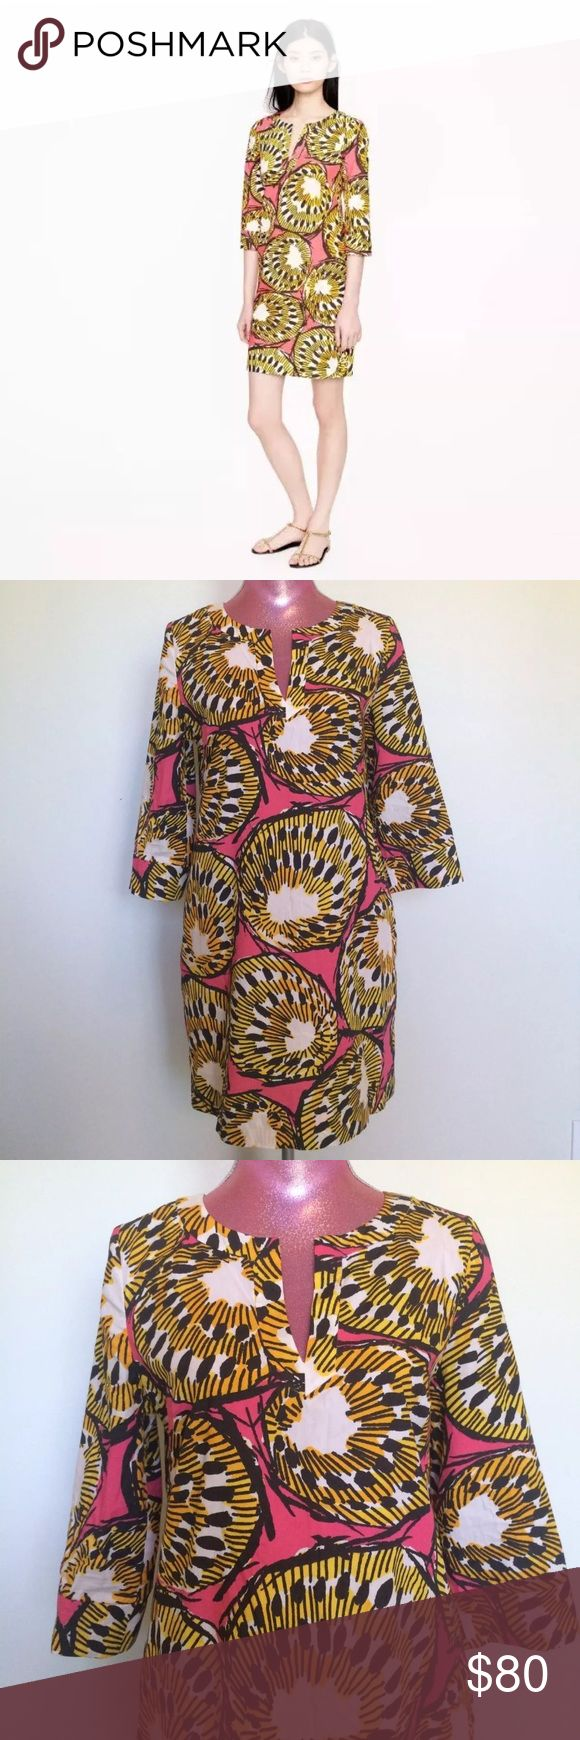 "J Crew Ratti Electric Kiwi Tunic Dress Size 8 - approx. measurements laying flat- 19 1/2"" W across chest - 33@ L shoulder to hemline  100% cotton - Tunic style - back Zip - on seam Pockets - inspired by bold colors of traditional African textiles - blown up Kiwi design from Italy's Ratti print house  Excellent pre-owned condition with no stains, tears or odors J. Crew Dresses"